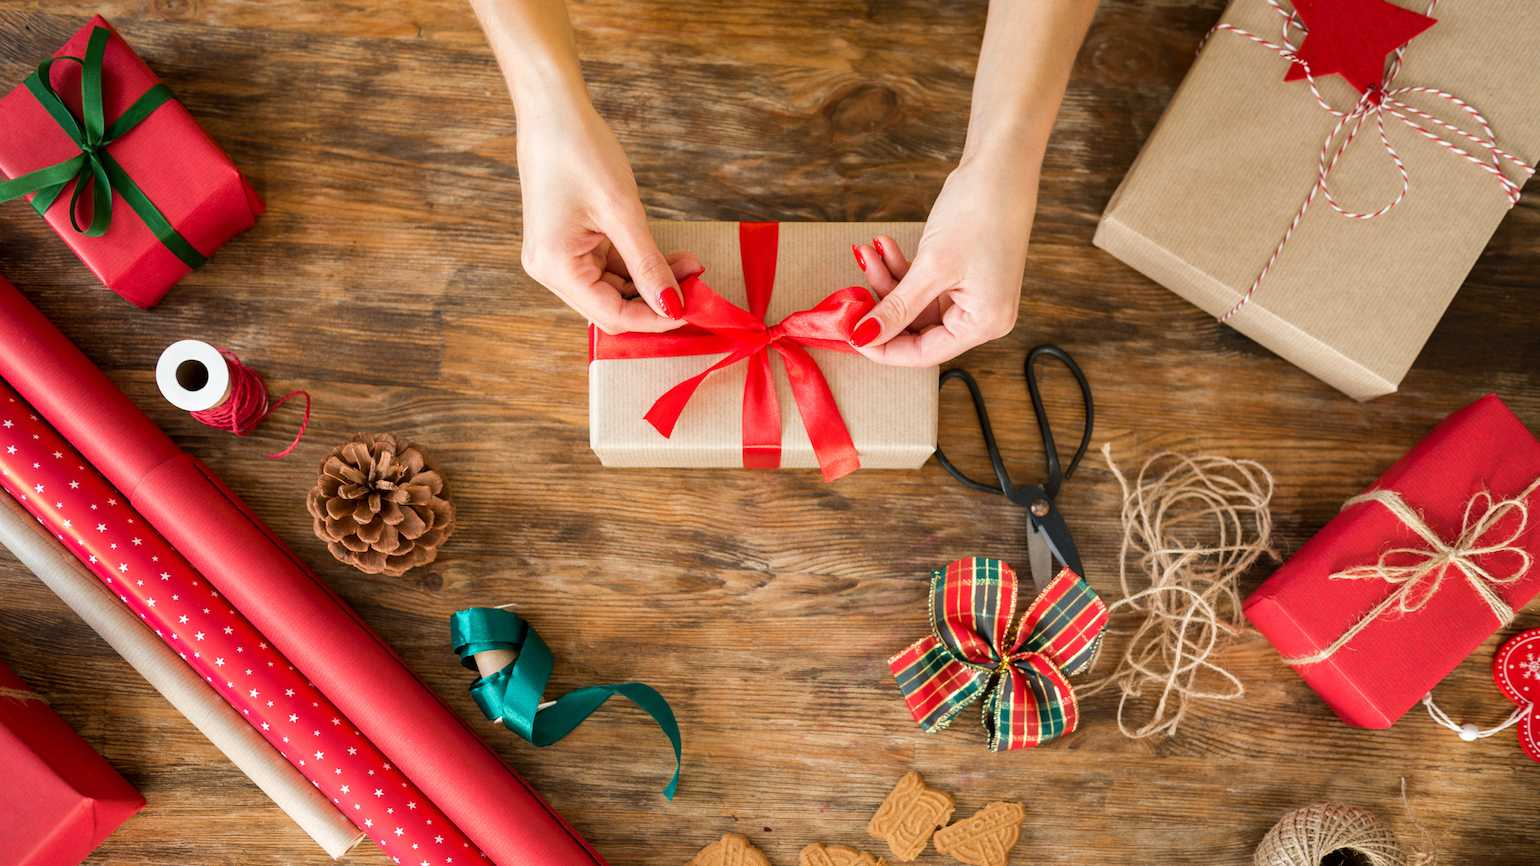 Early and mindful gift shopping